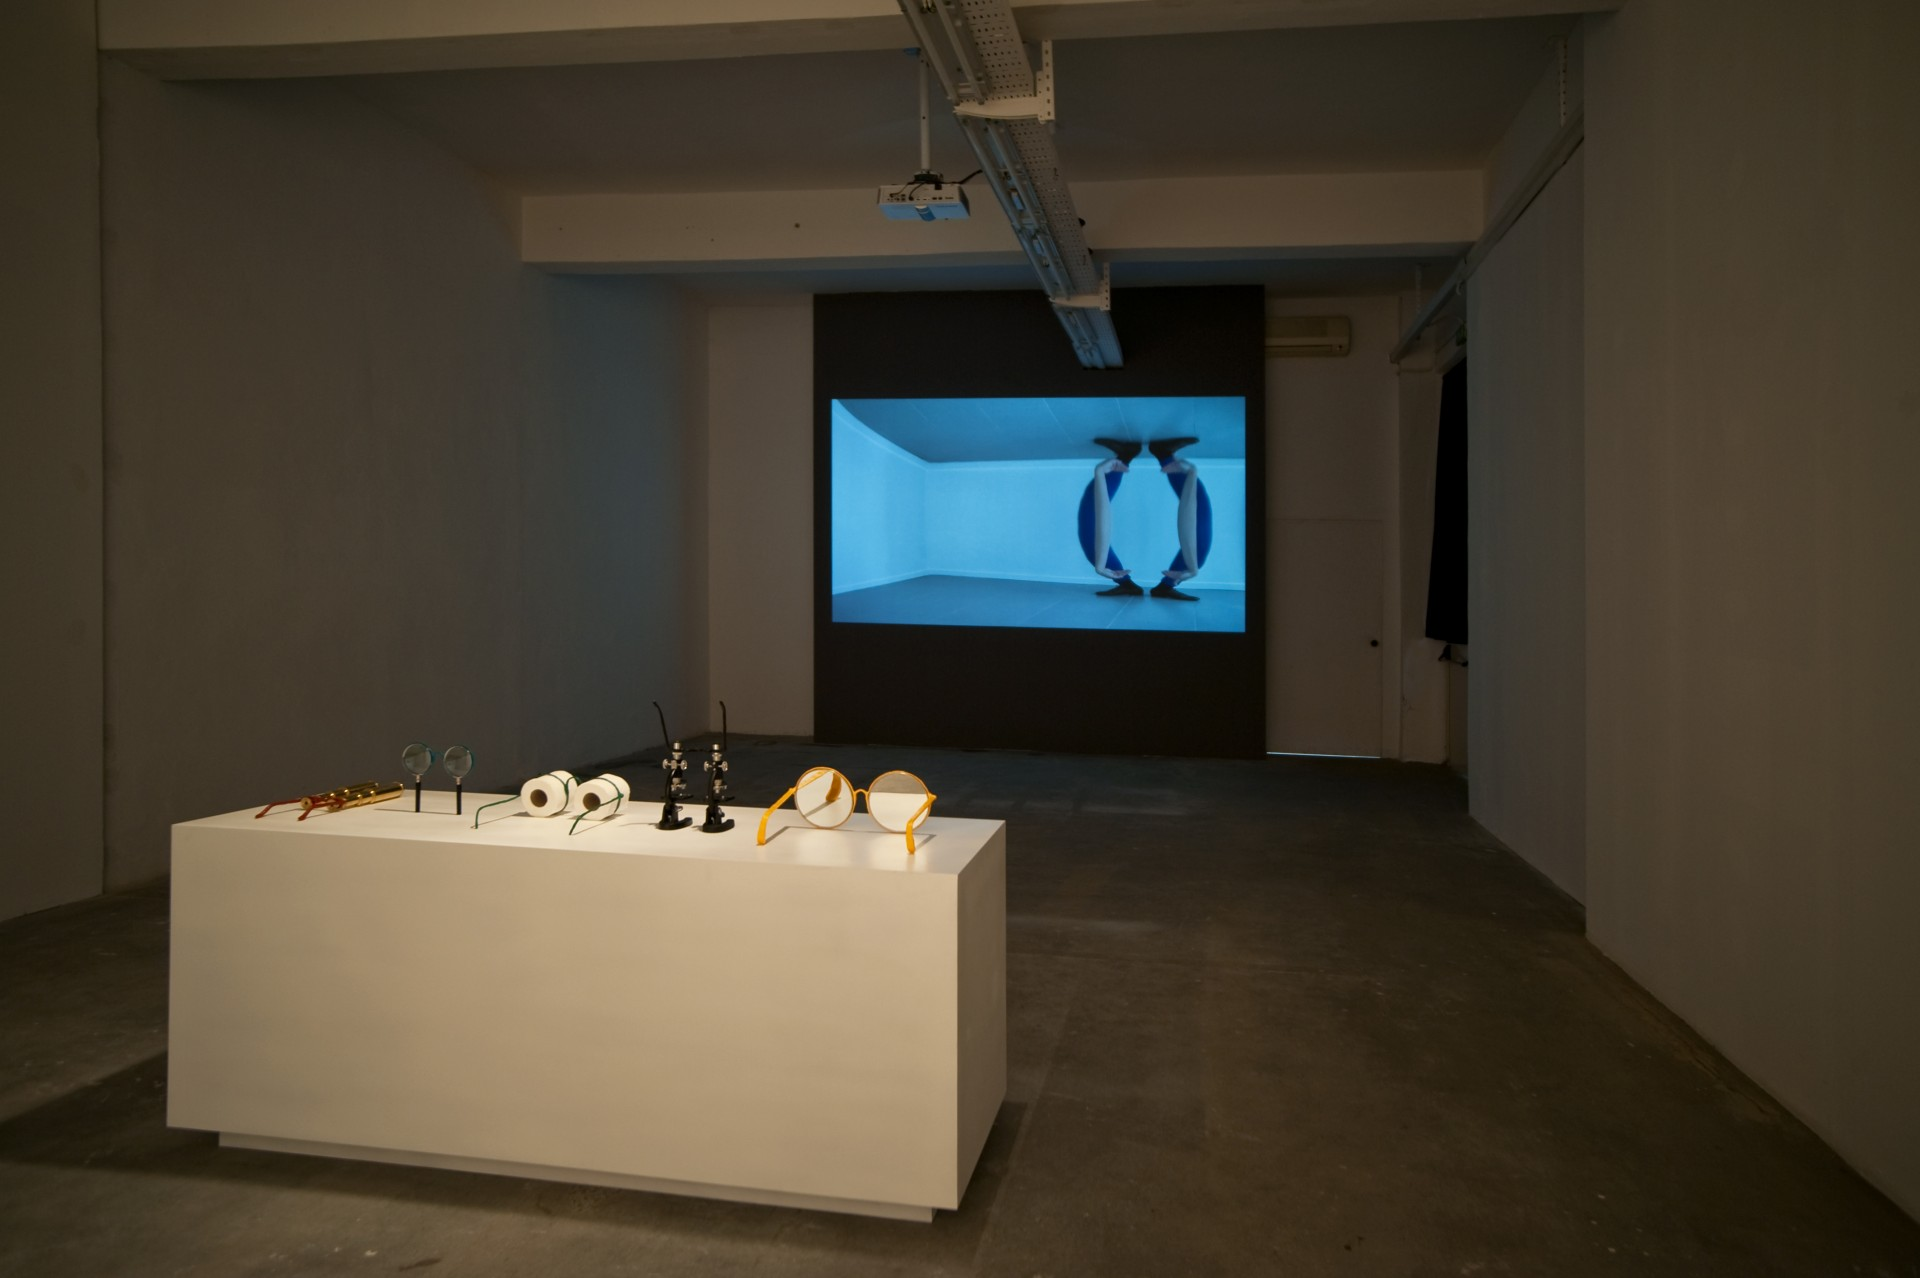 Jamie Isenstein, <i>Spectacle</i>, 2017, installation view at Gluck50, Milan. Courtesy of the artist and Gluck50. Ph. Raph Meazza